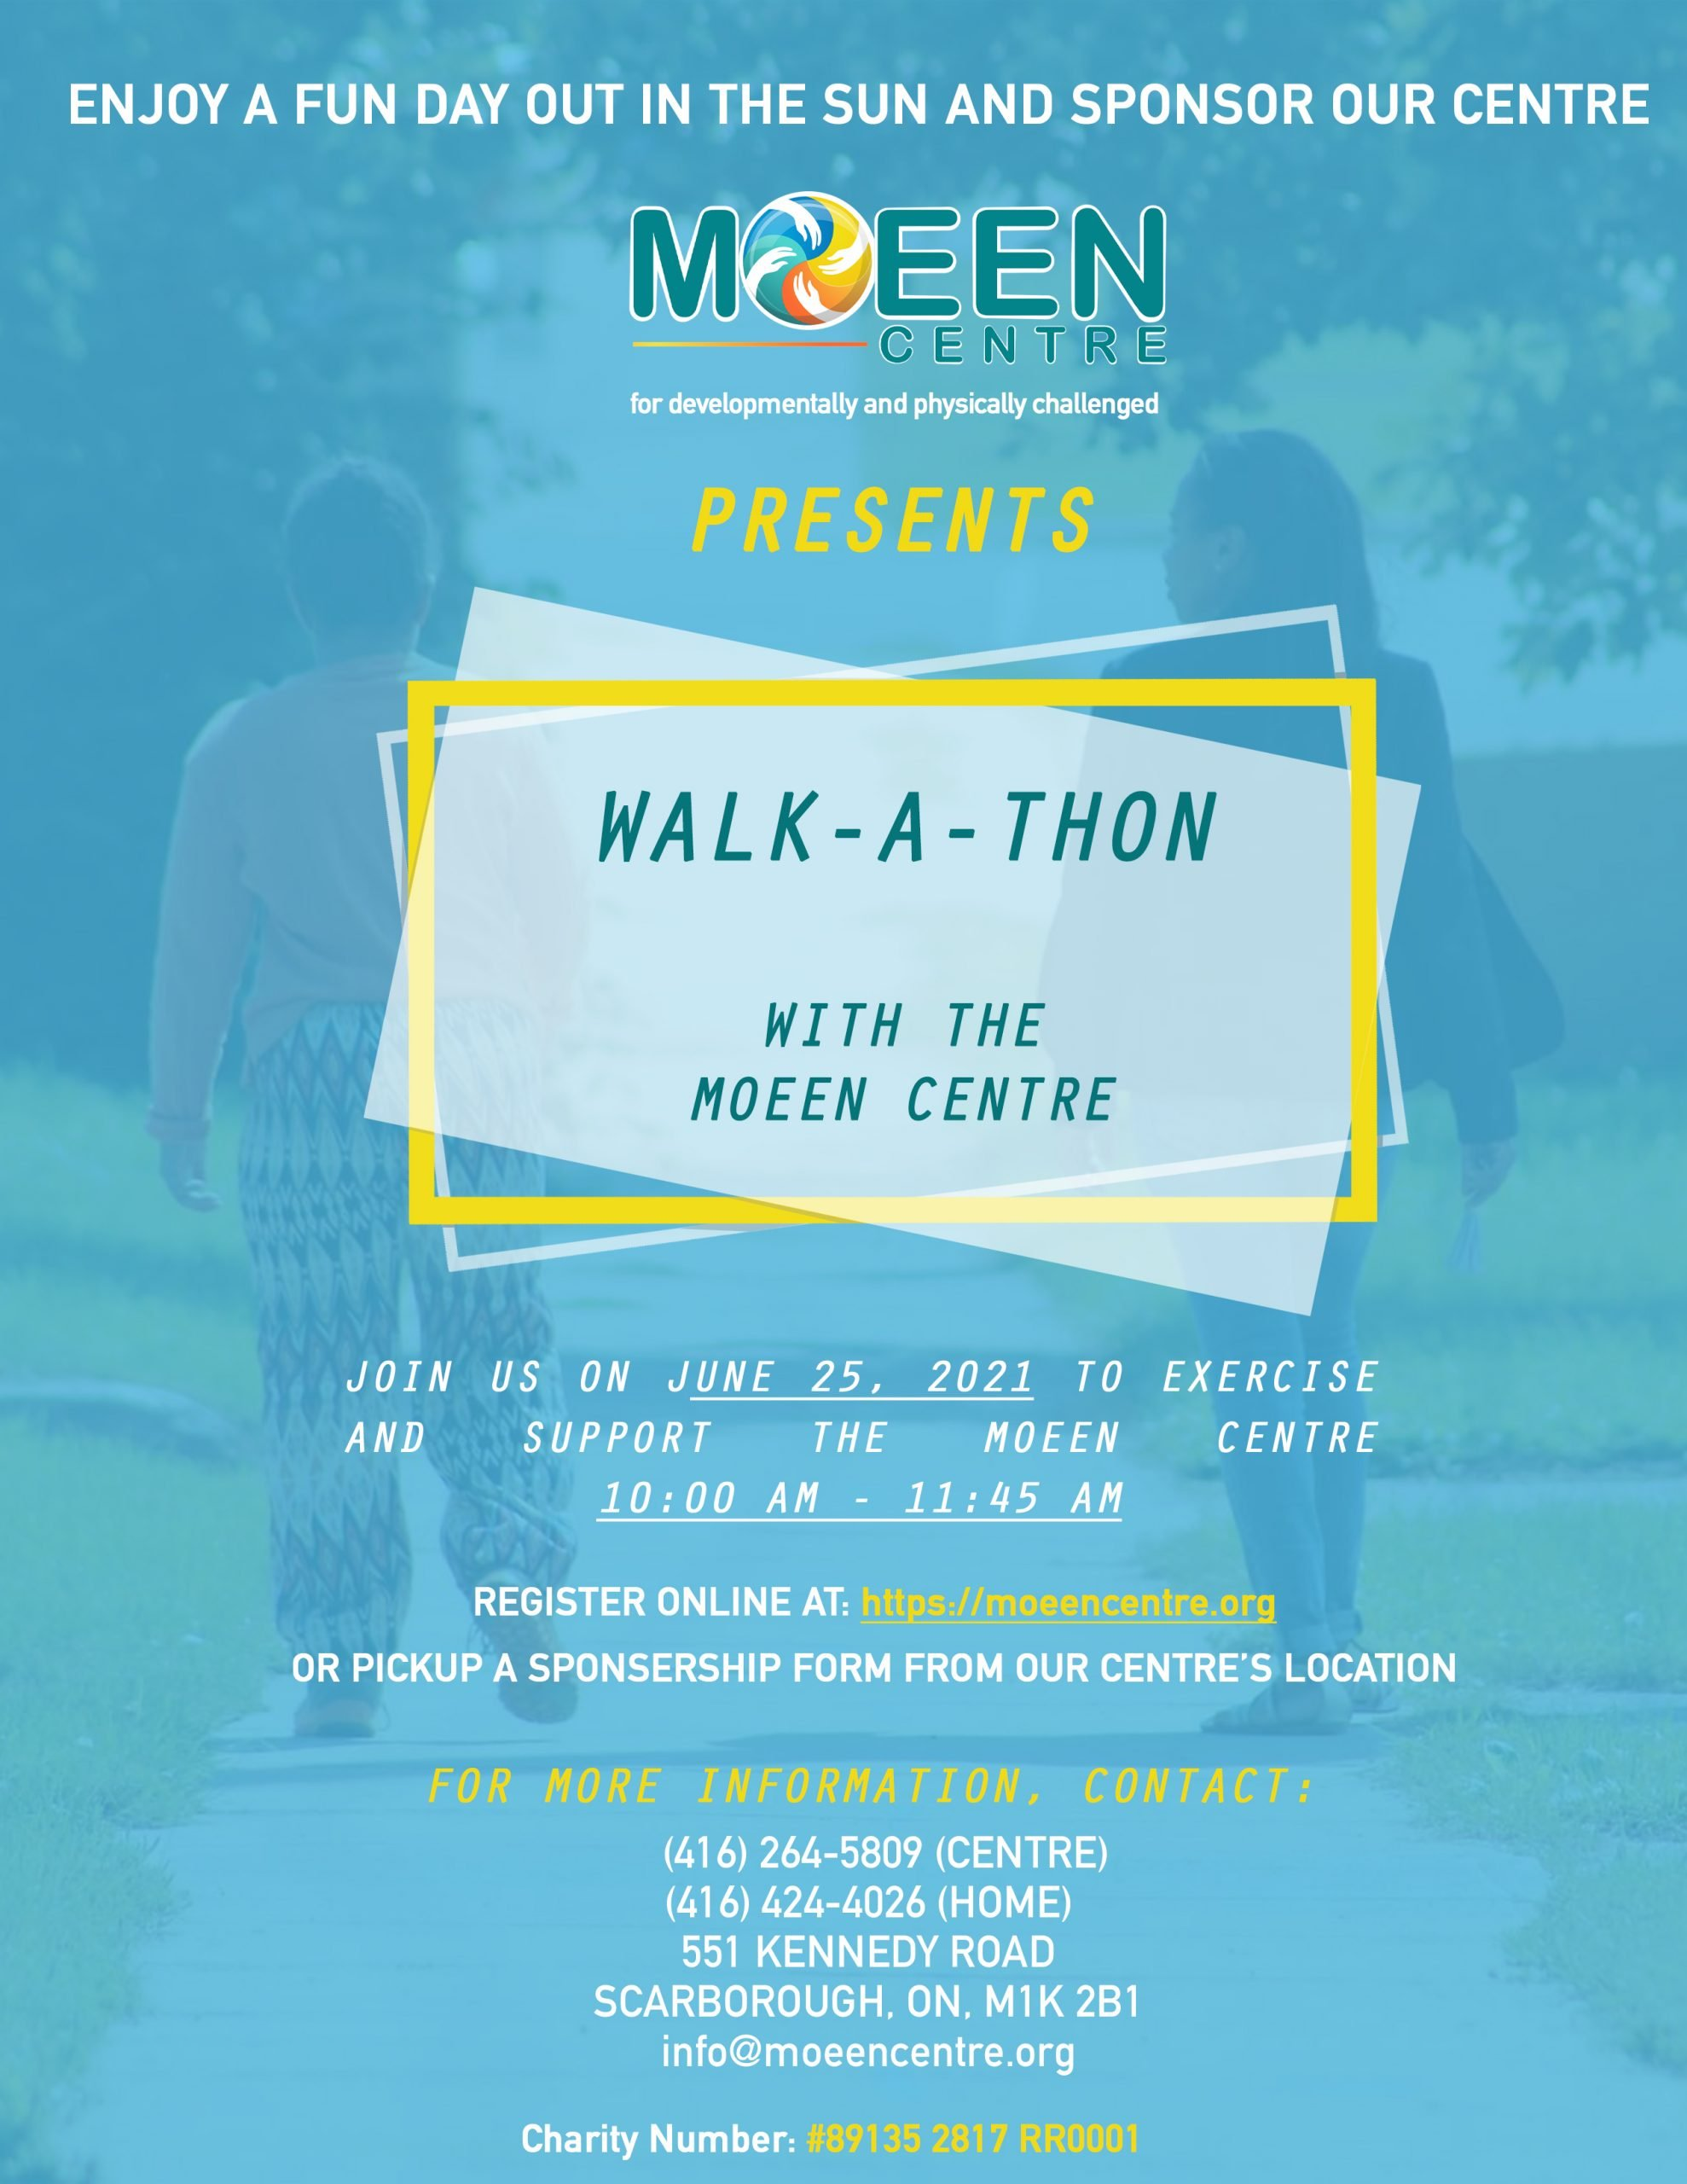 Walk - A - Thon With Moeen Centre